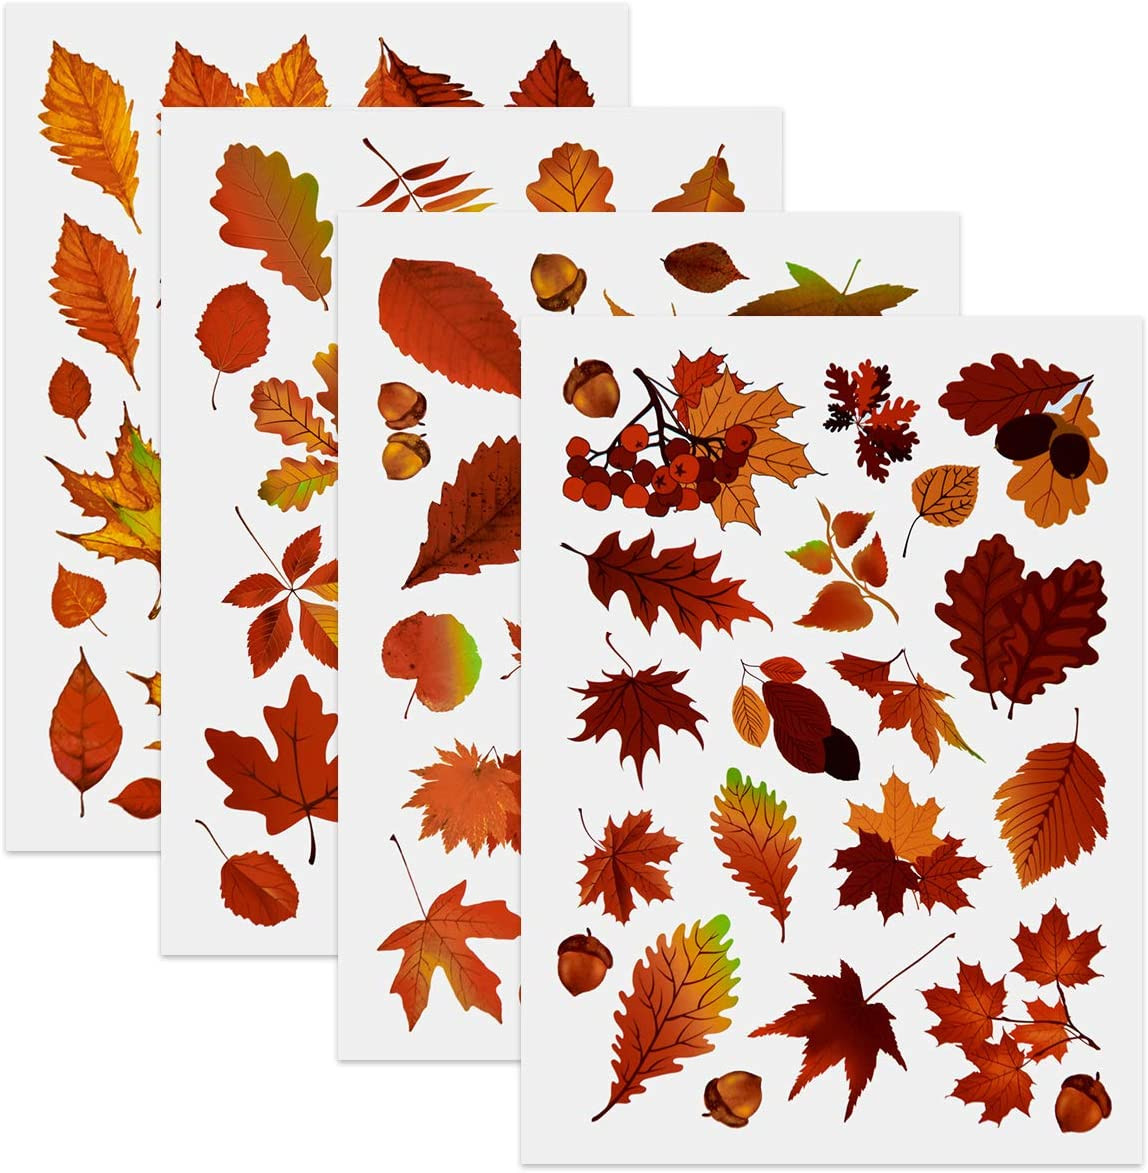 174 Pcs 8 Sheets Maple Leaf Window Stickers Static Cling Reusable Window Decals Glass Stickers for Autumn Party Decoration//Thanksgiving Supplies//Kids Fun